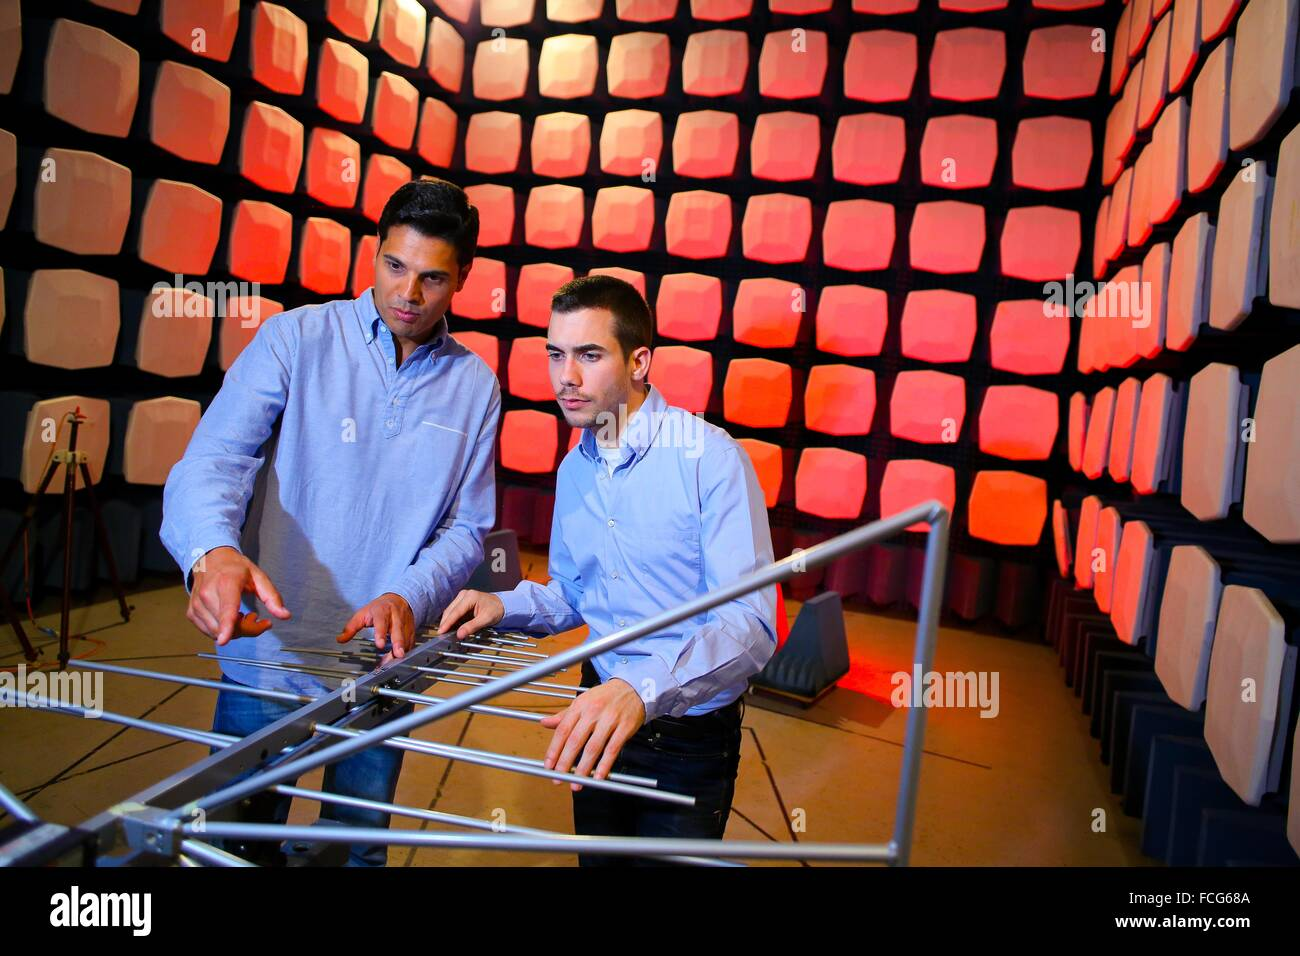 Researchers anechoic chamber emc telecom lab certification of researchers anechoic chamber emc telecom lab certification of low voltage electrical electronic products technological 1betcityfo Image collections